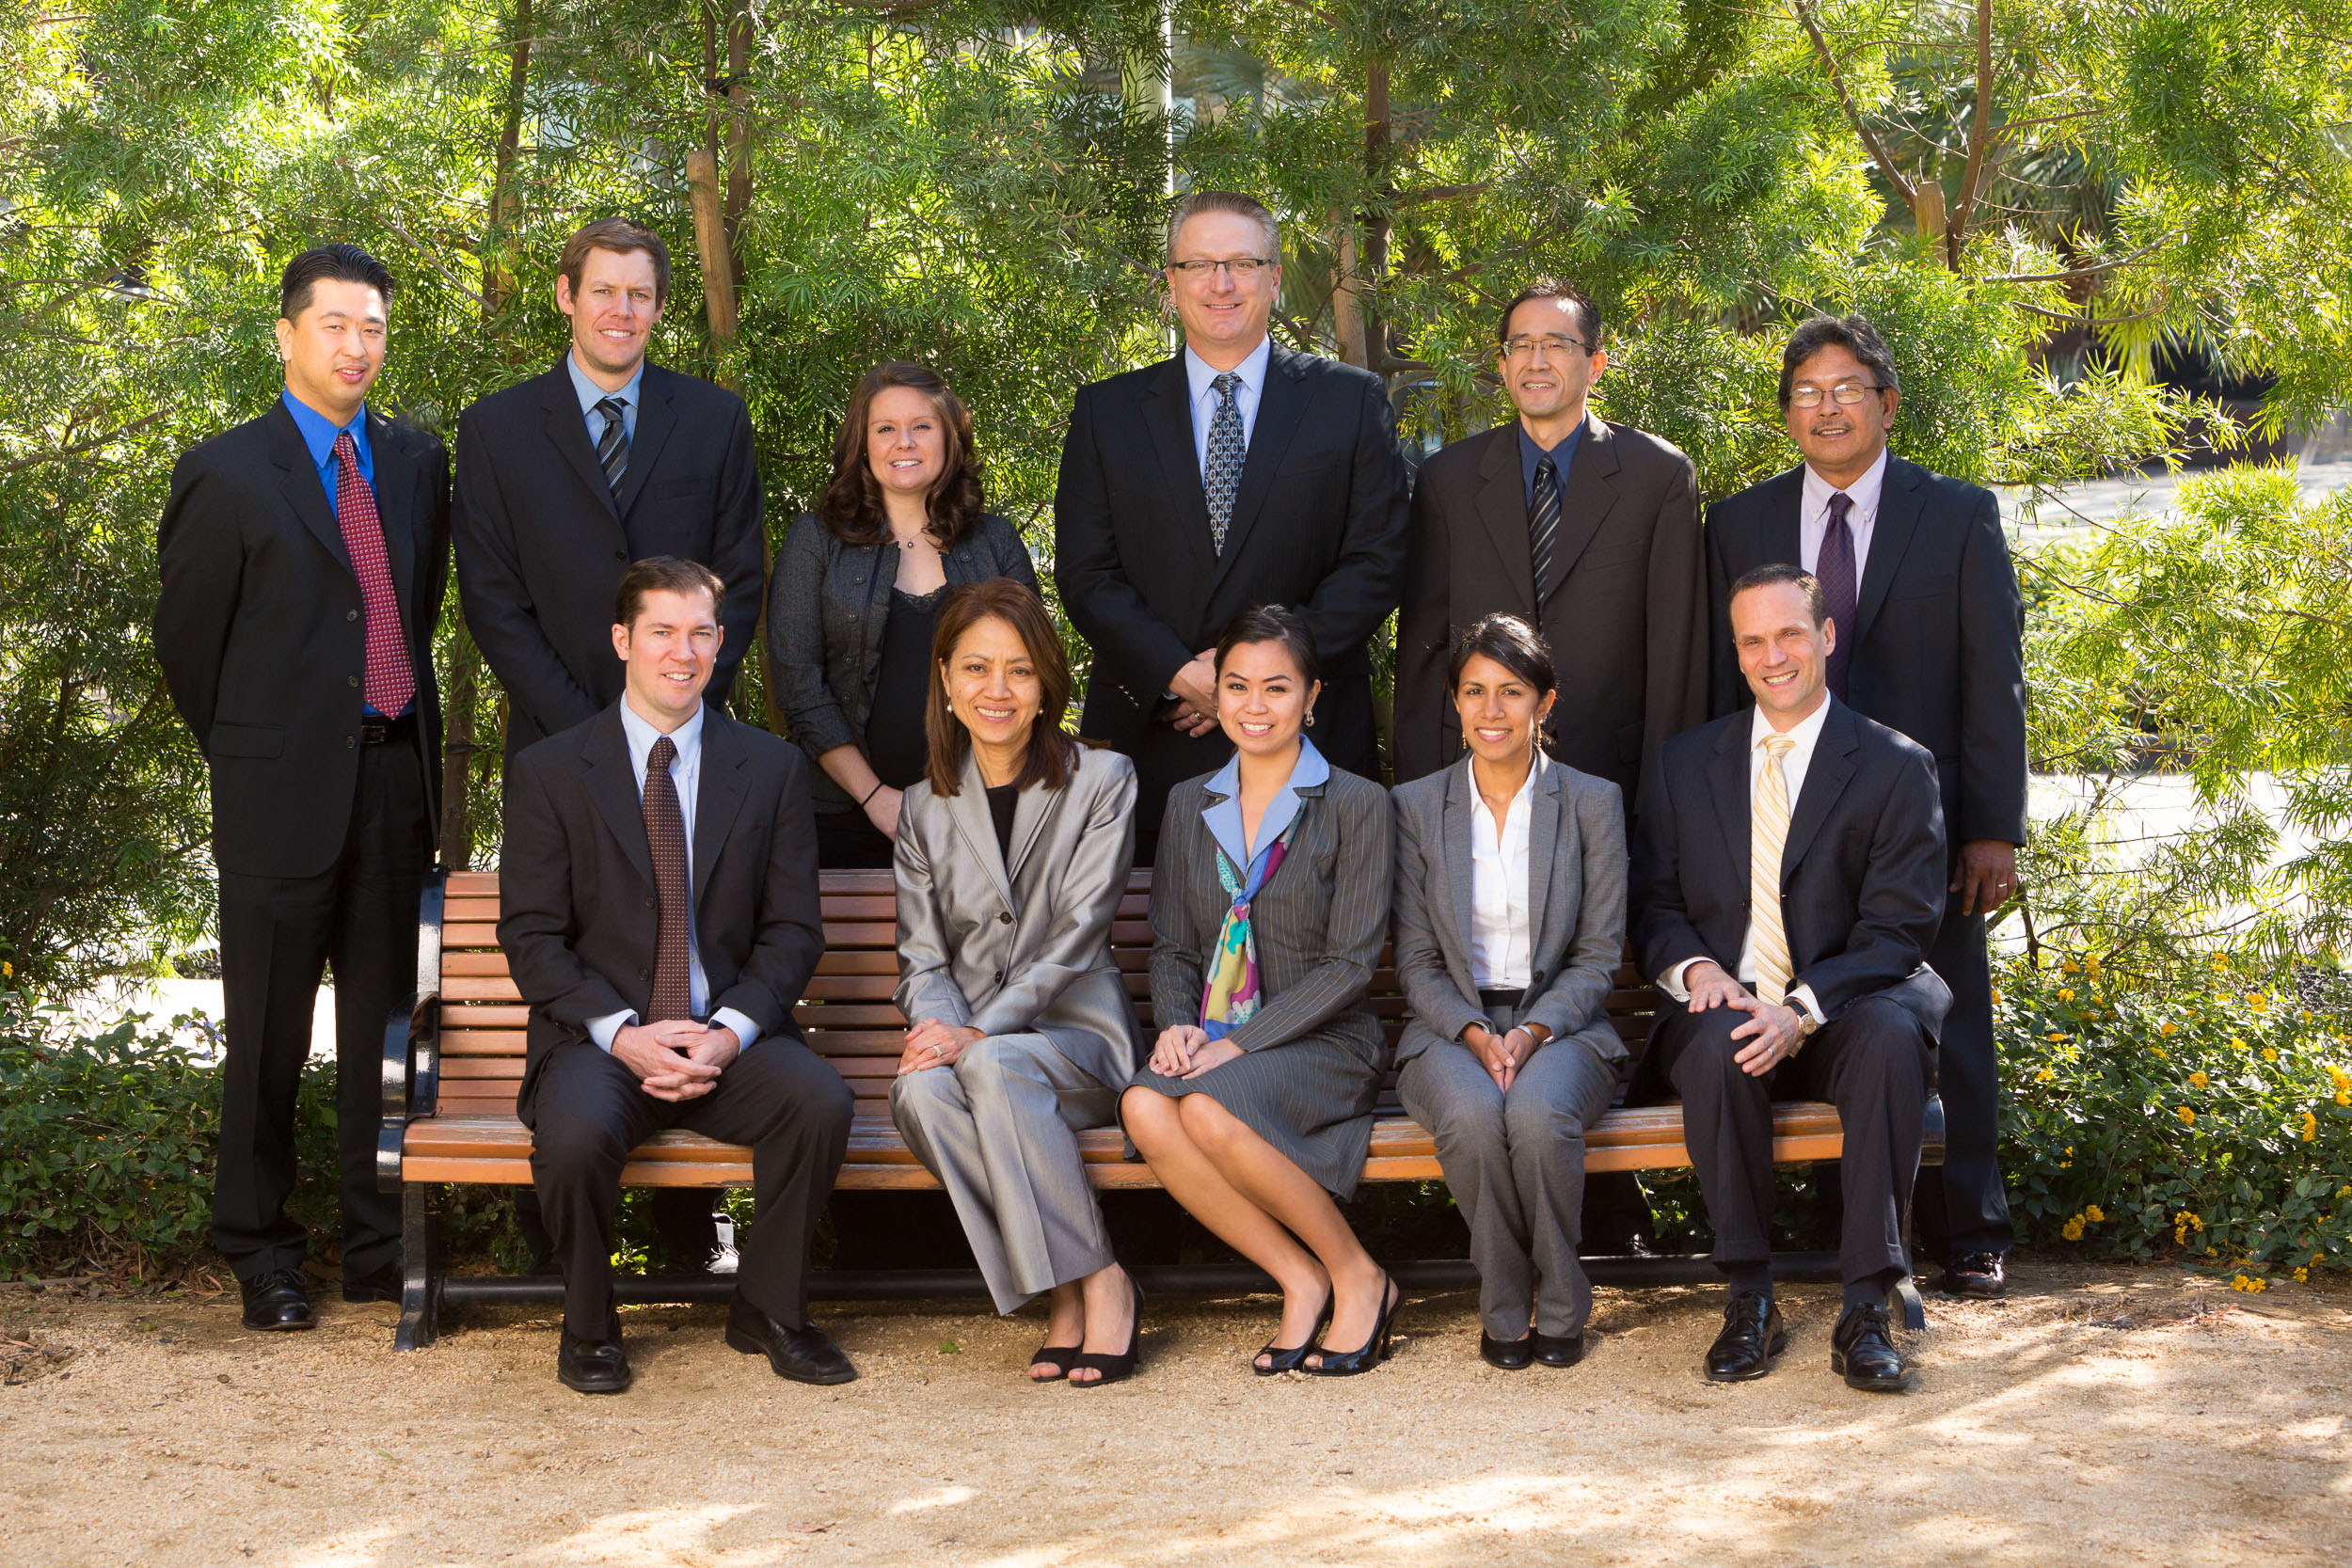 Back Row - Left to Right: